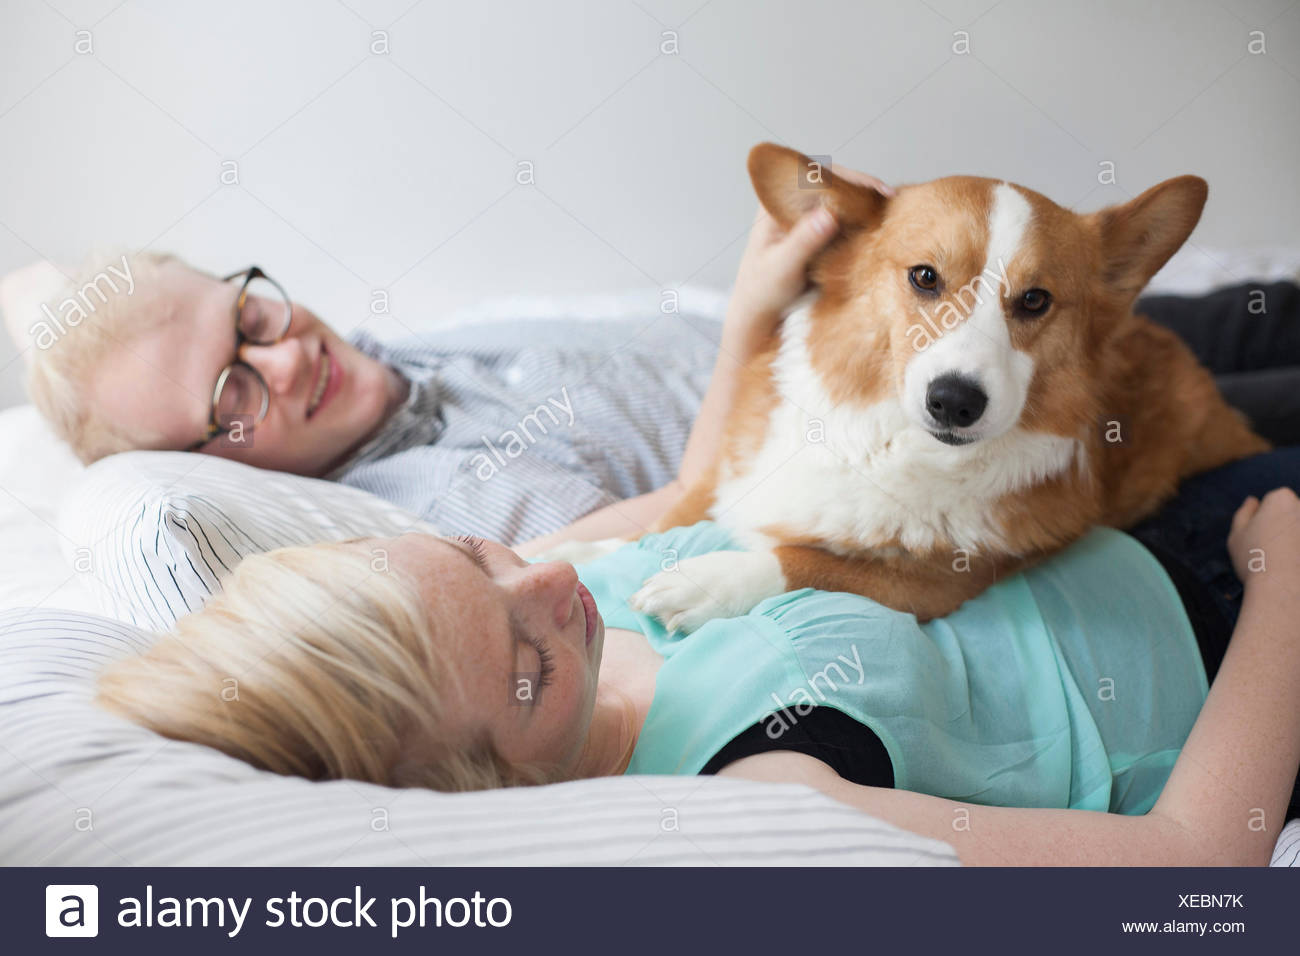 Cute corgi dog lying on bed with young couple - Stock Image